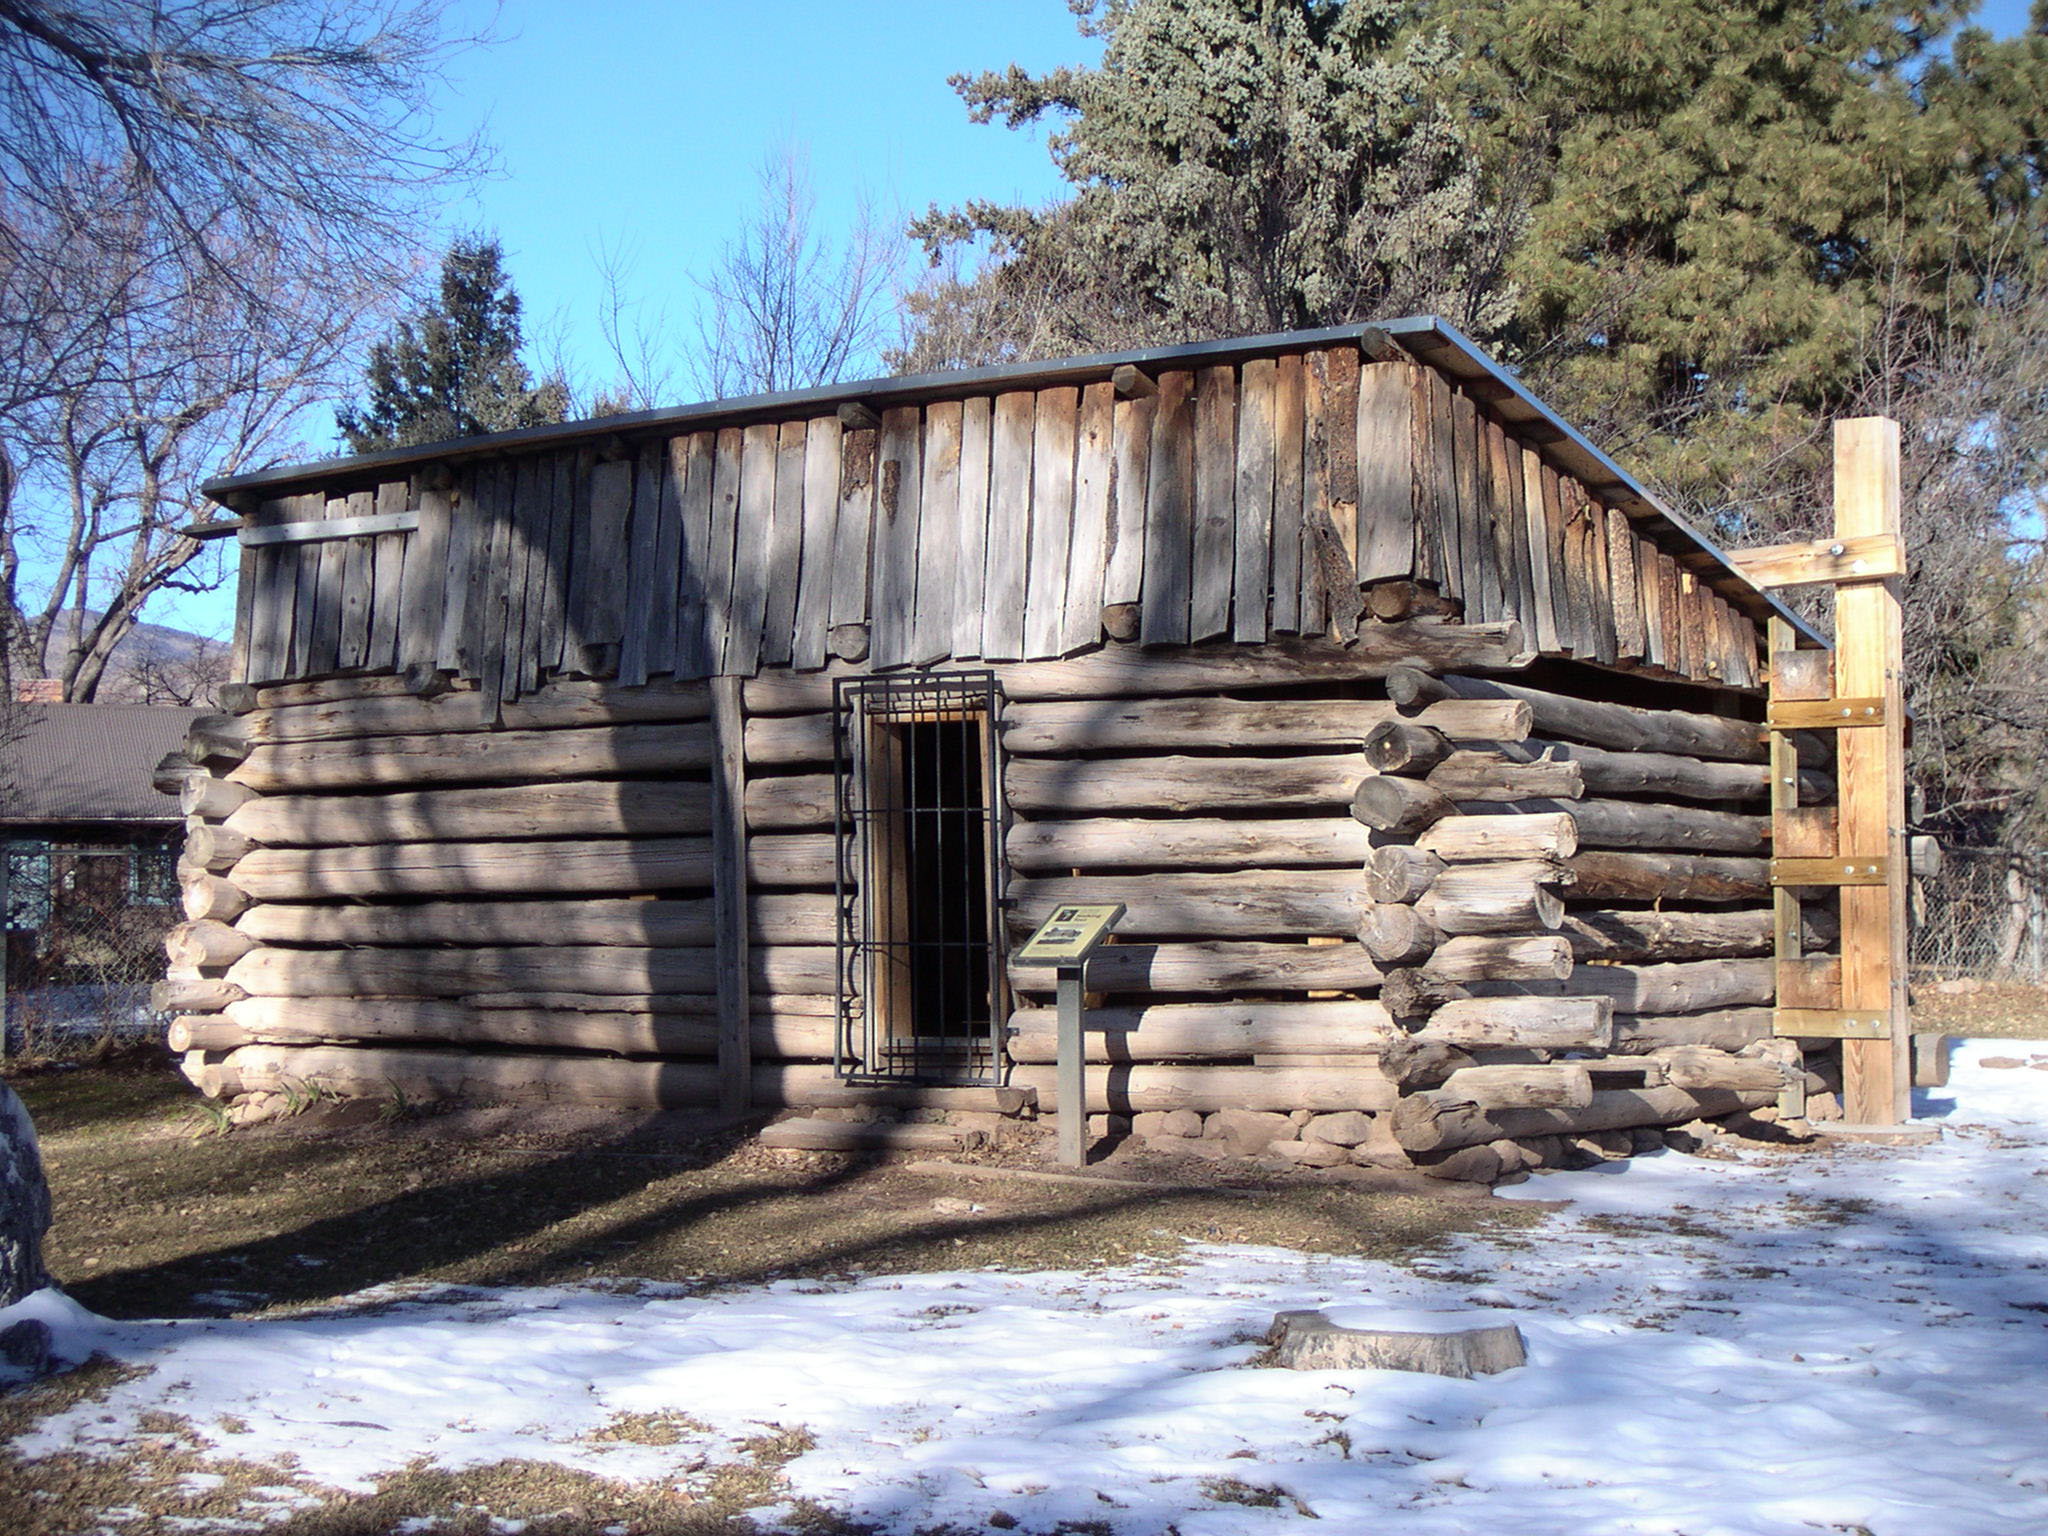 The Romero Cabin, built by Hispano homesteaders in 1913, is one of only two remaining structures from the Homesteading era on the Pajarito Plateau